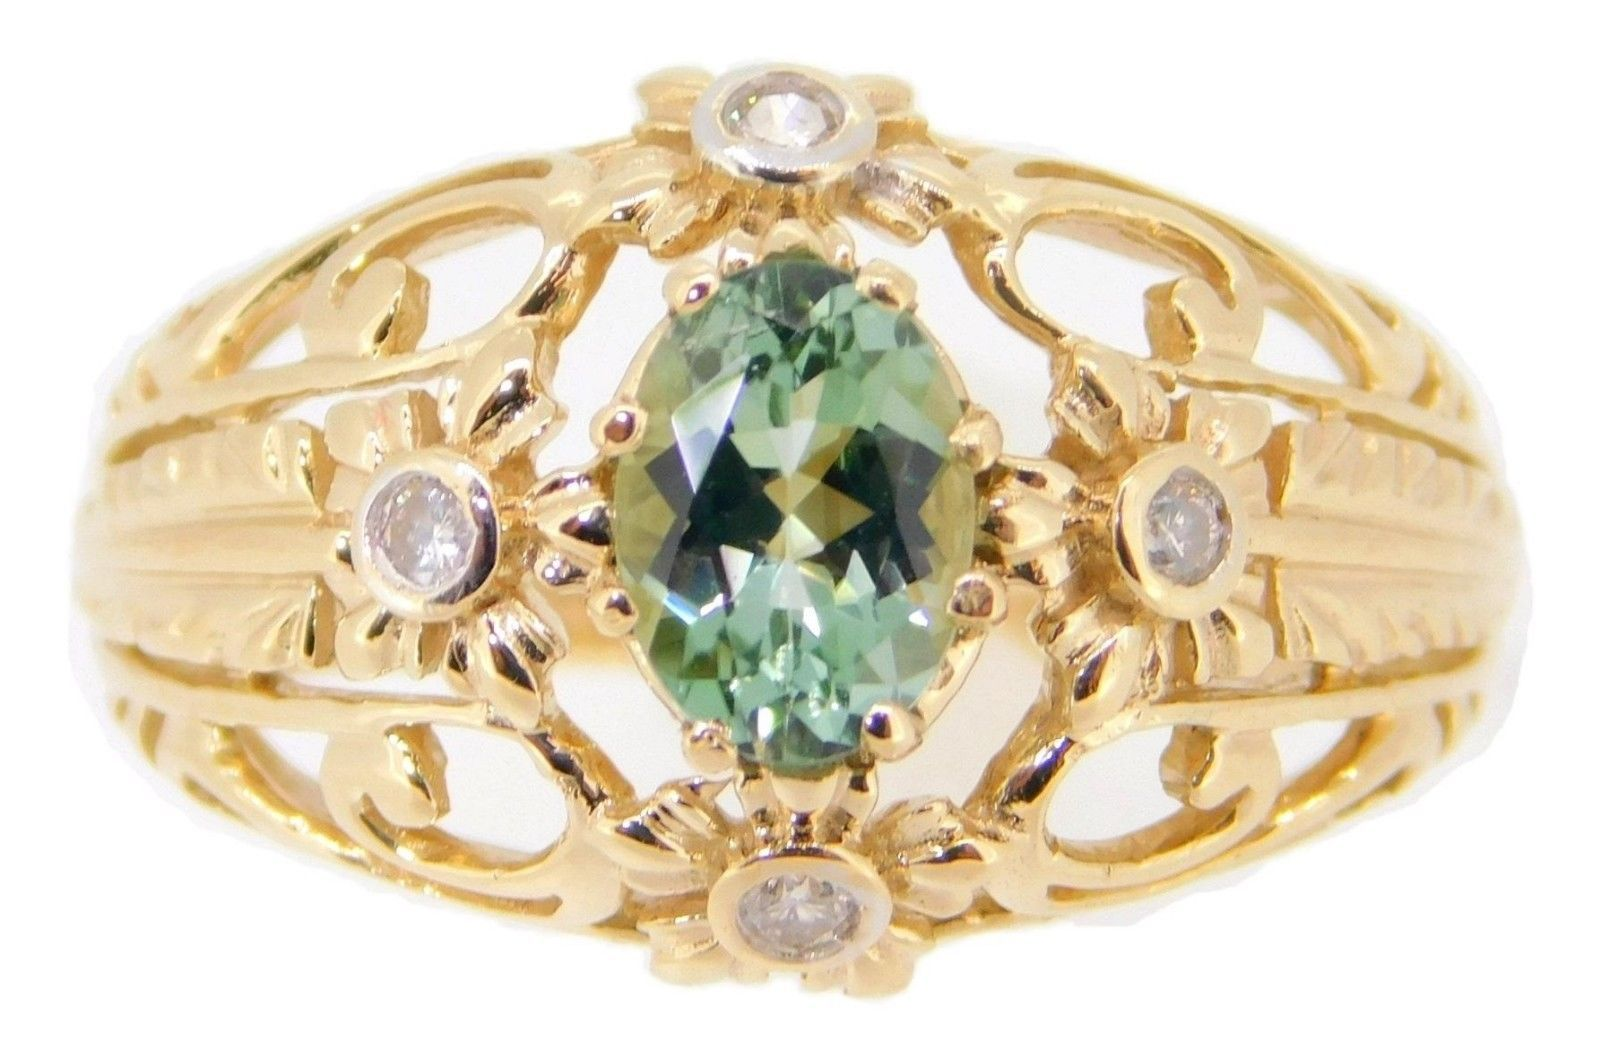 Primary image for 10k Gold .72ct Green Genuine Natural Tourmaline Ring with Diamonds (#J3987)